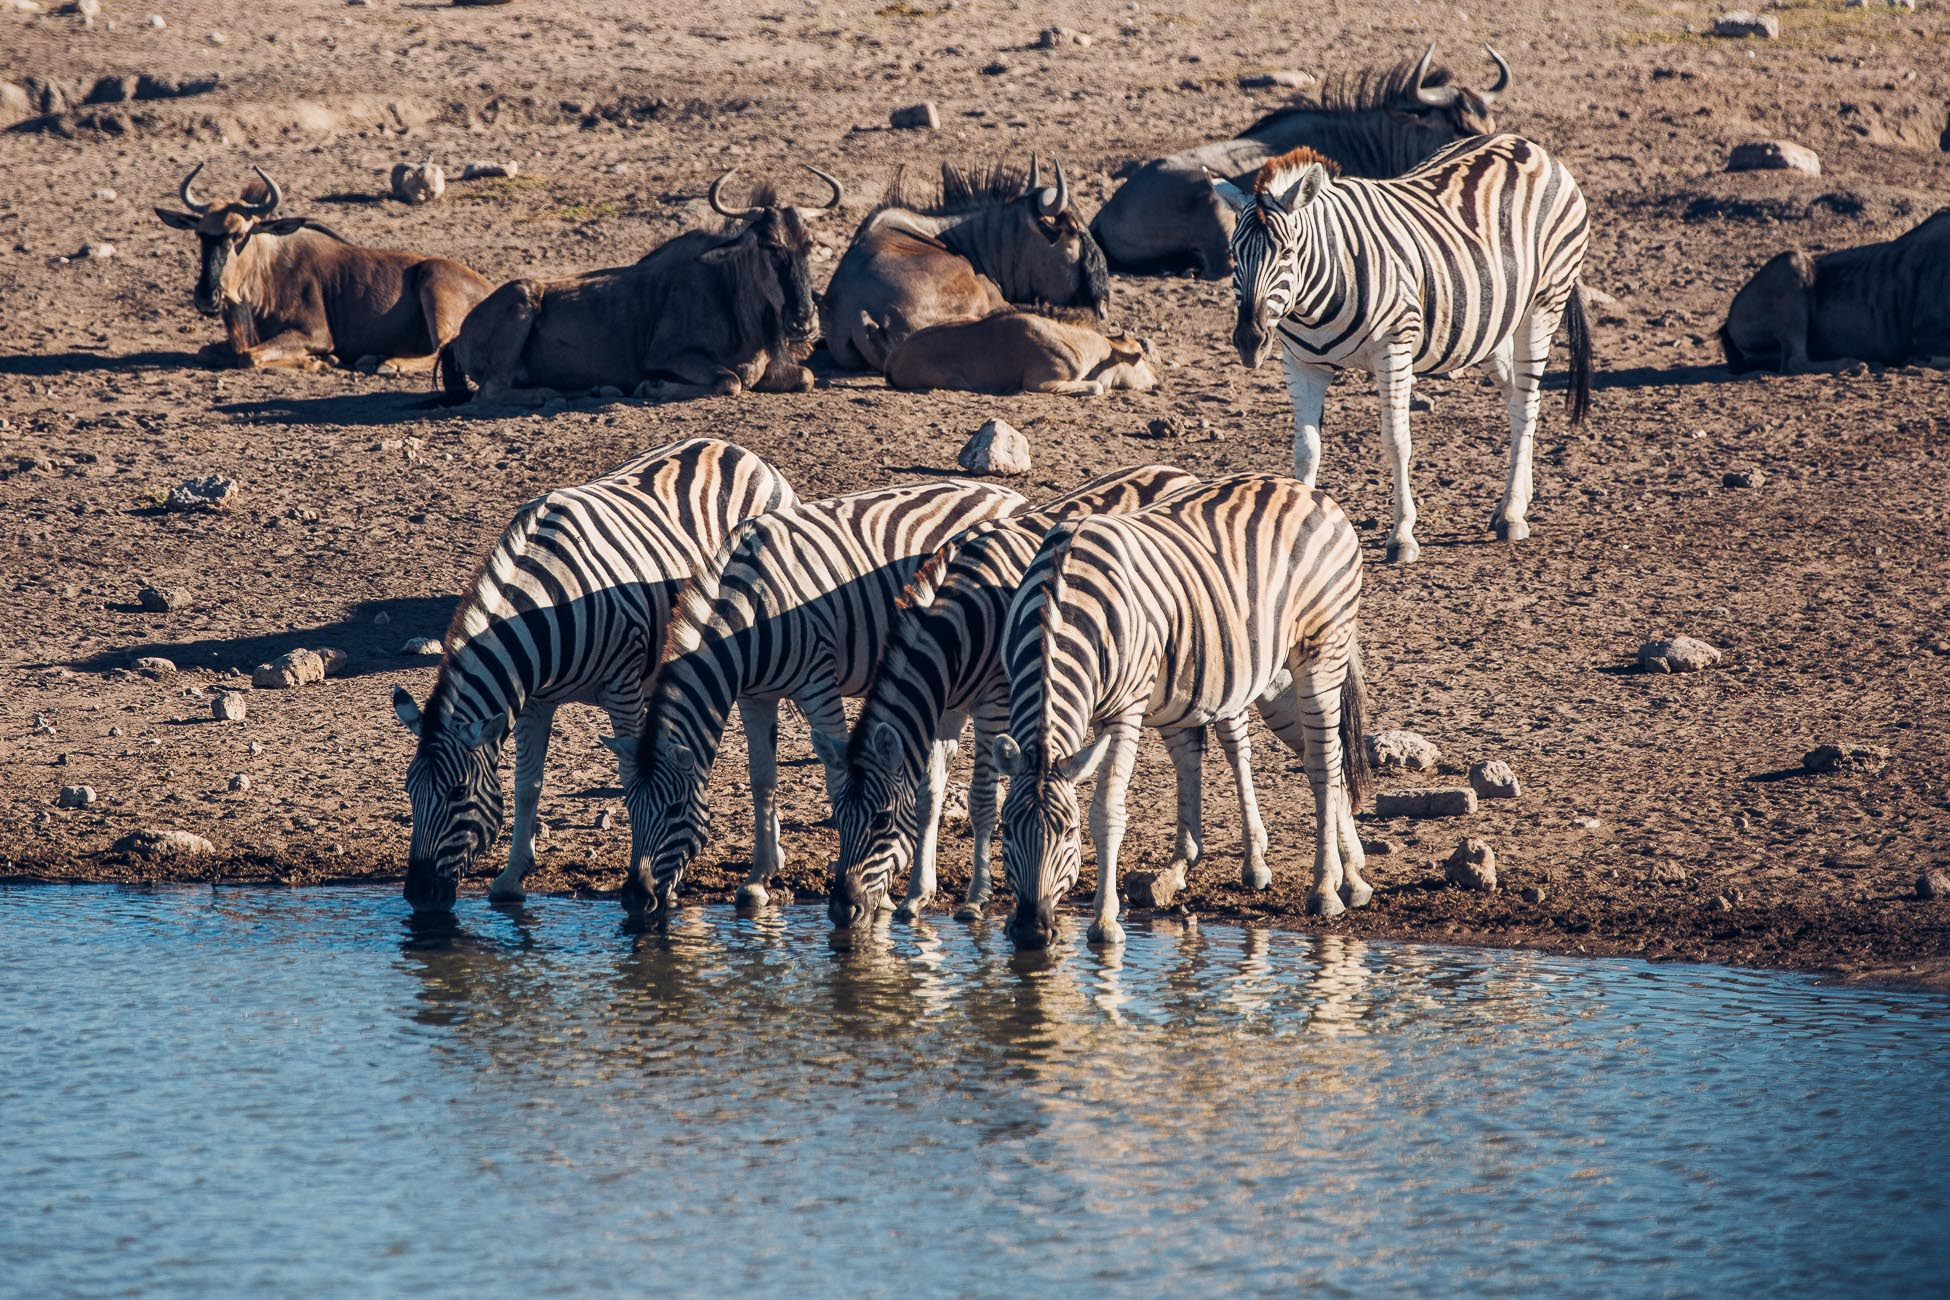 Zebras and Wildebeest at Etosha National Park